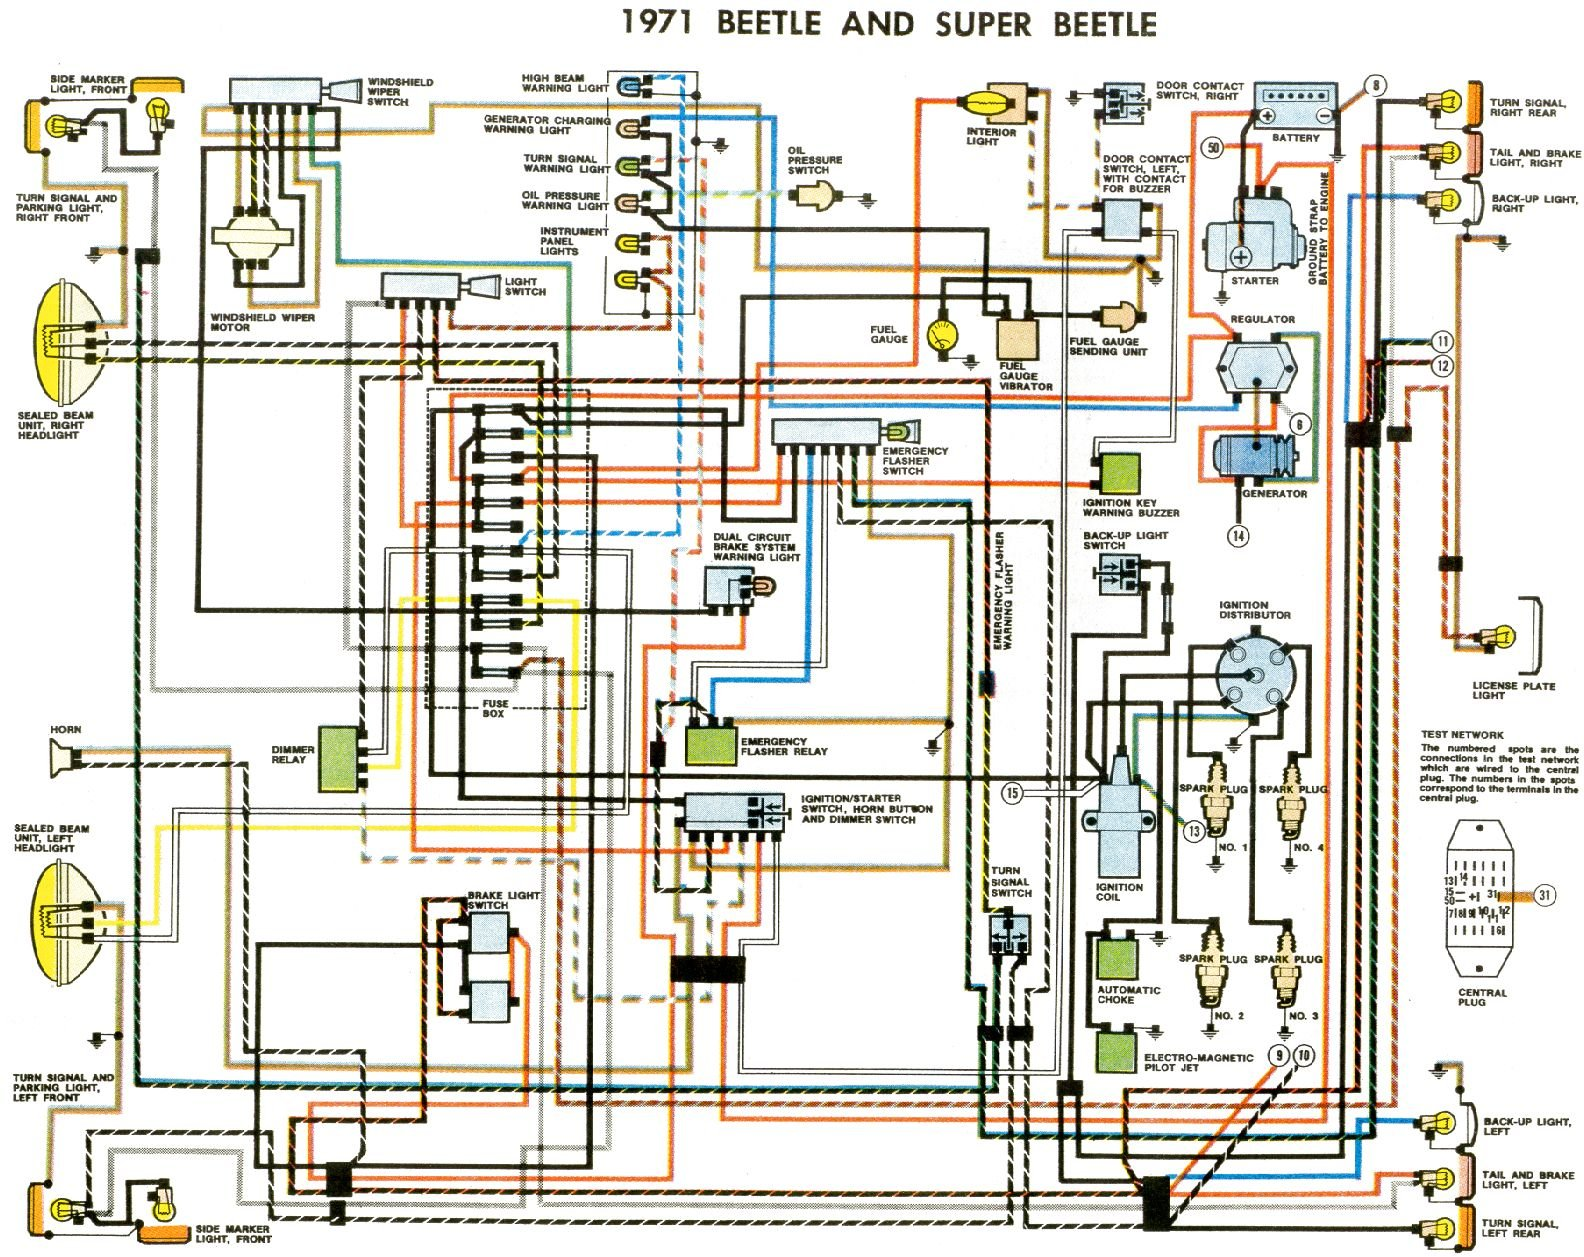 bug_71 1971 beetle wiring diagram (usa) thegoldenbug com 1965 vw beetle wiring diagram at nearapp.co